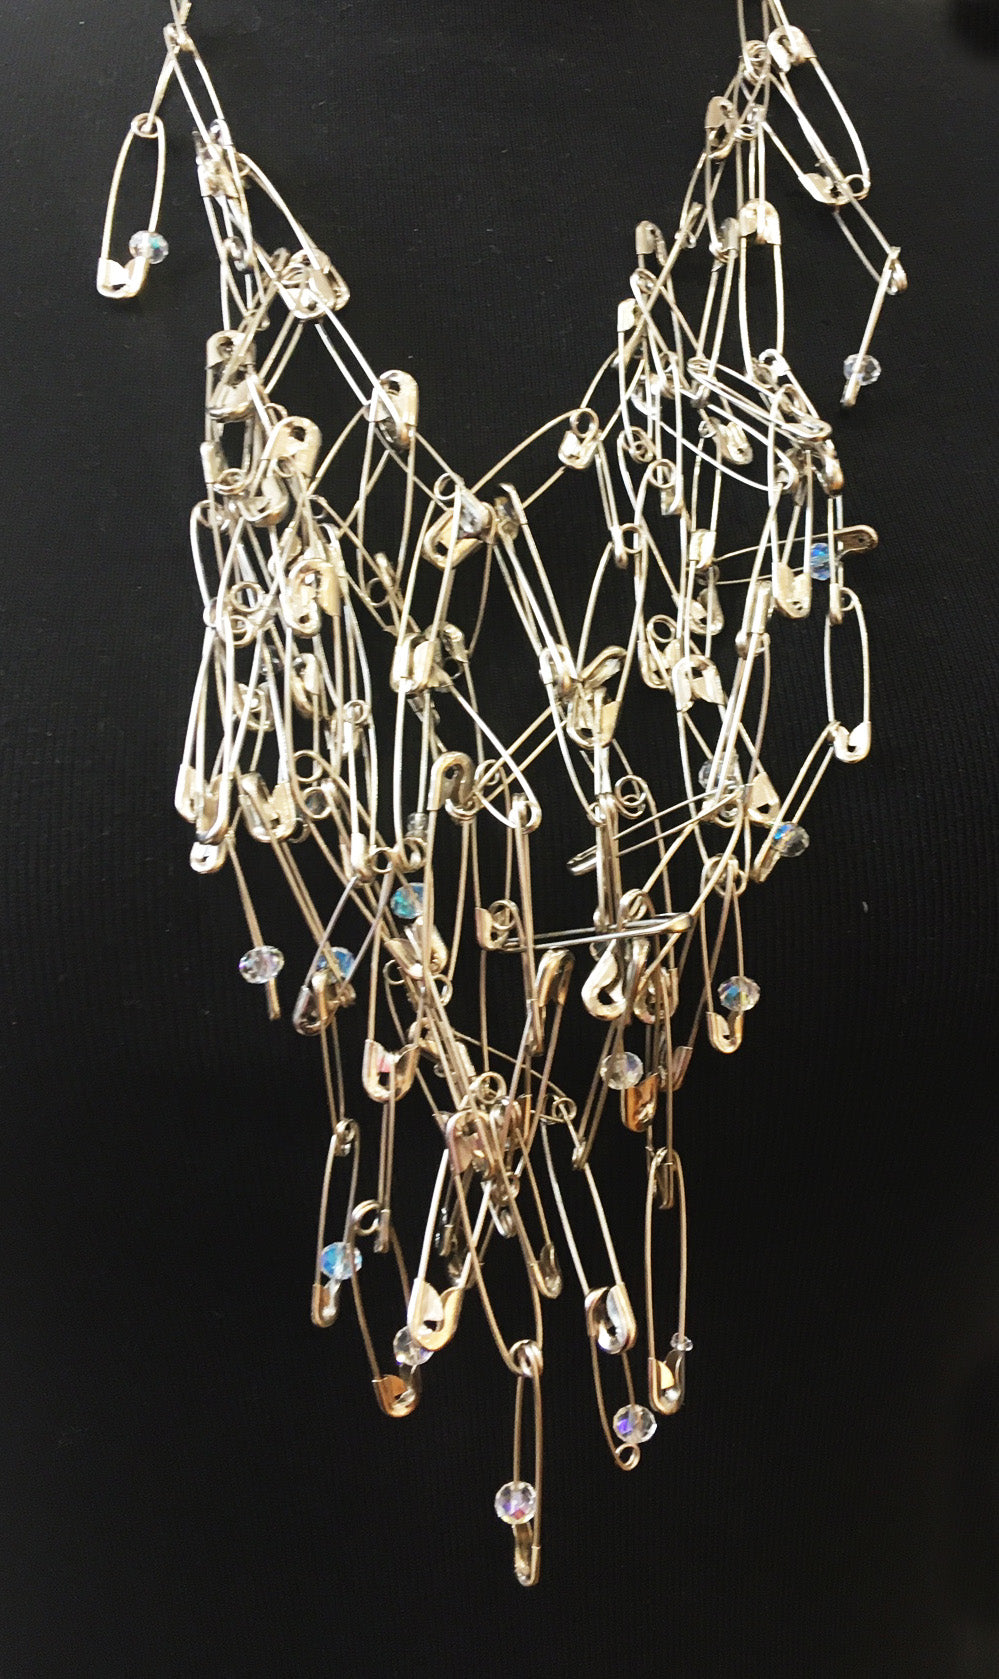 *Craft Week special. Pins and Beads Necklace with Liz Gemmell 17th October